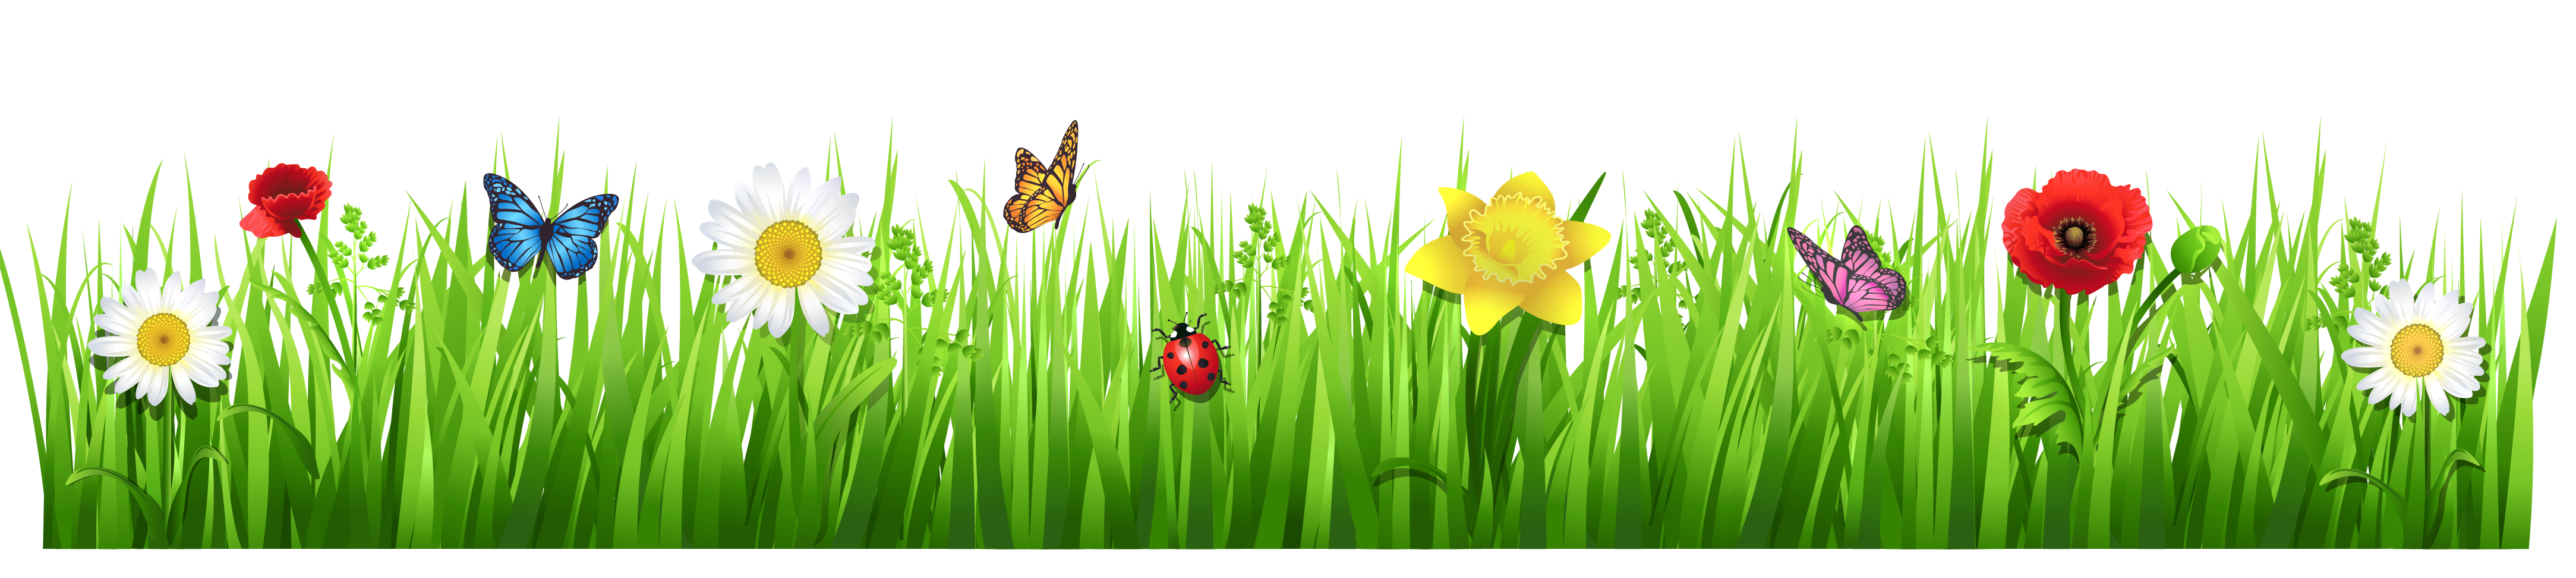 Clipart grass translucent. Spring with flowers png